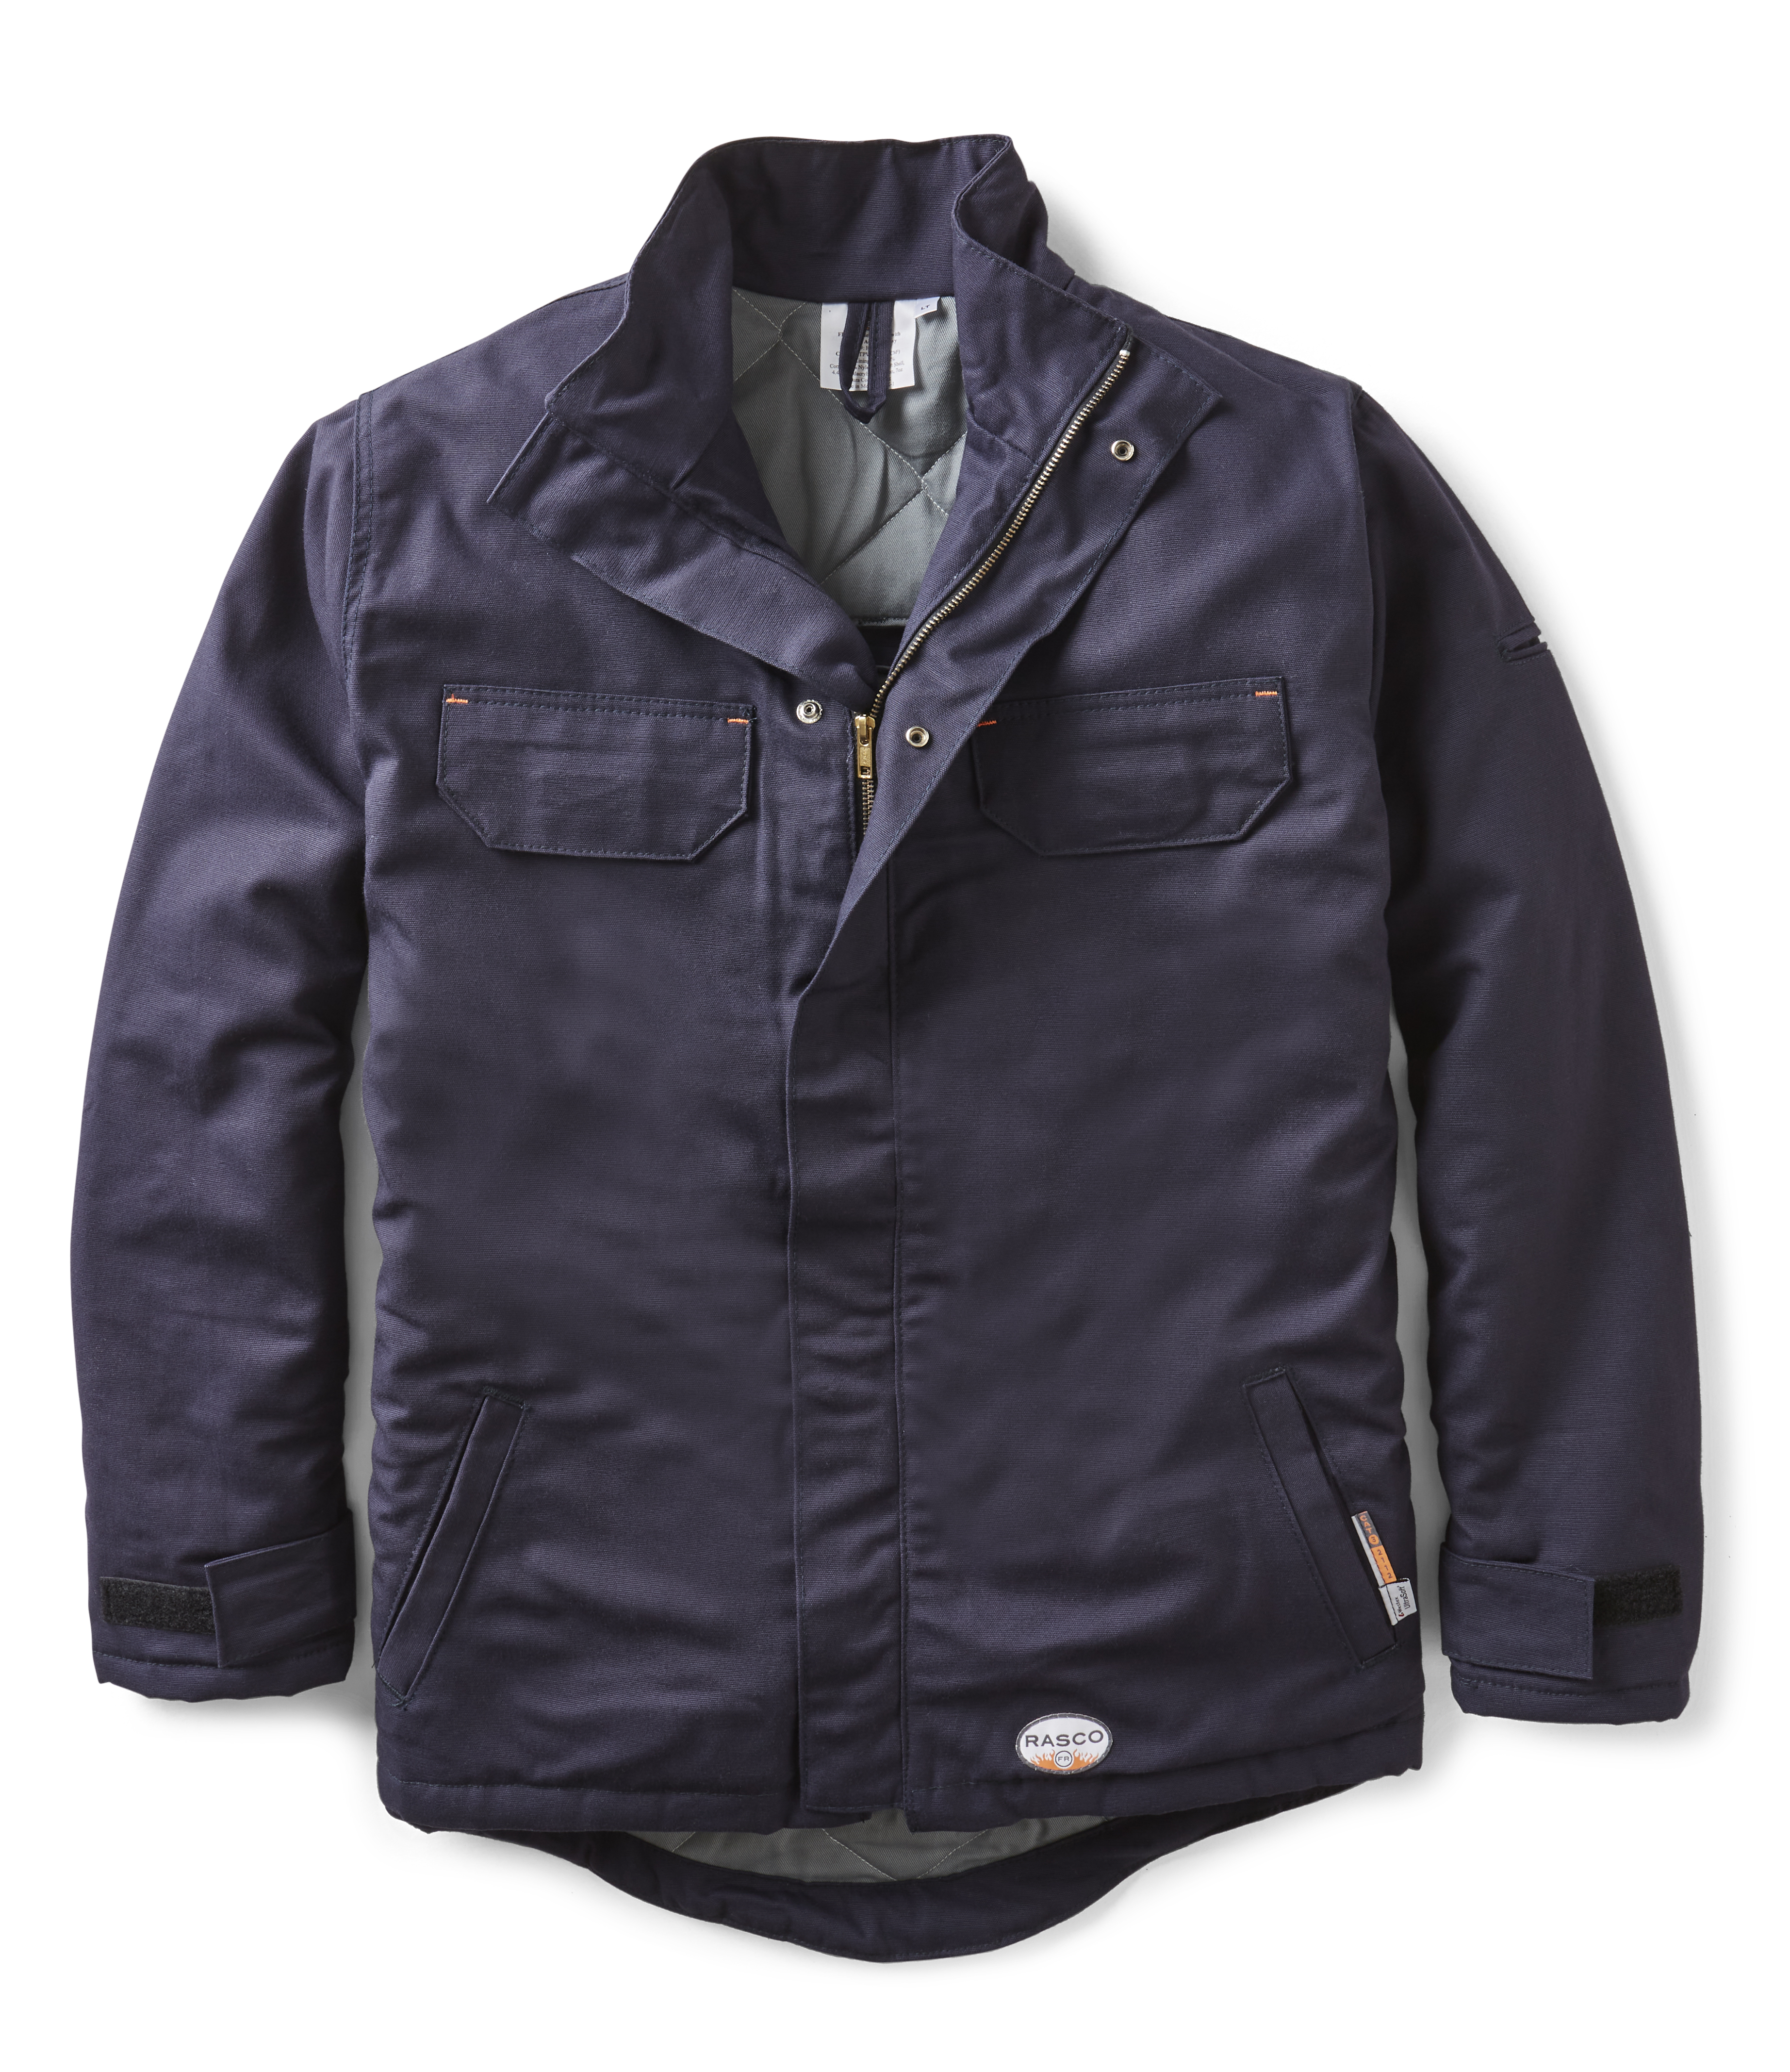 FR Duck Field Jacket with Lanyard Access